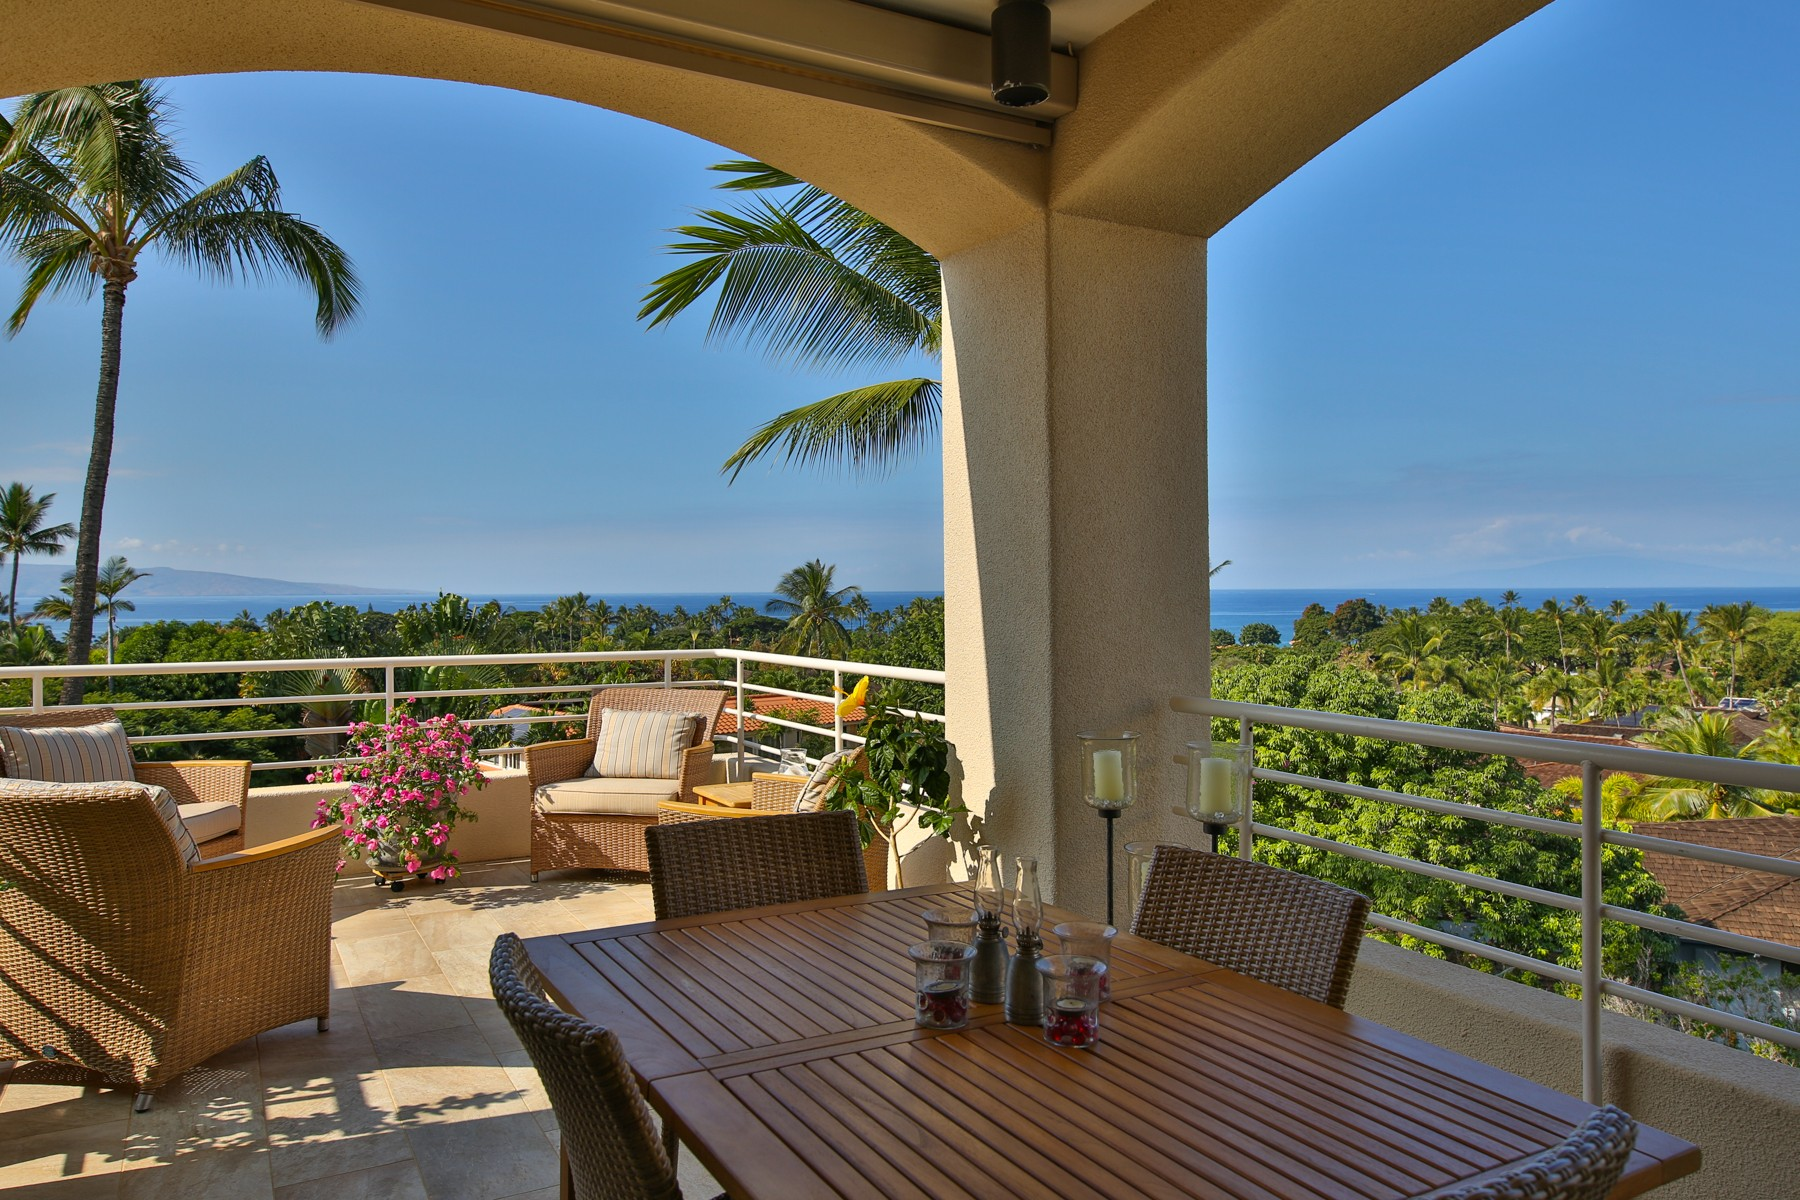 Кондоминиум для того Продажа на Intriguing Ocean & Sunset Views All-Year-round 3150 Wailea Alanui Drive, Wailea Palms 3504 Wailea, Гавайи 96753 Соединенные Штаты